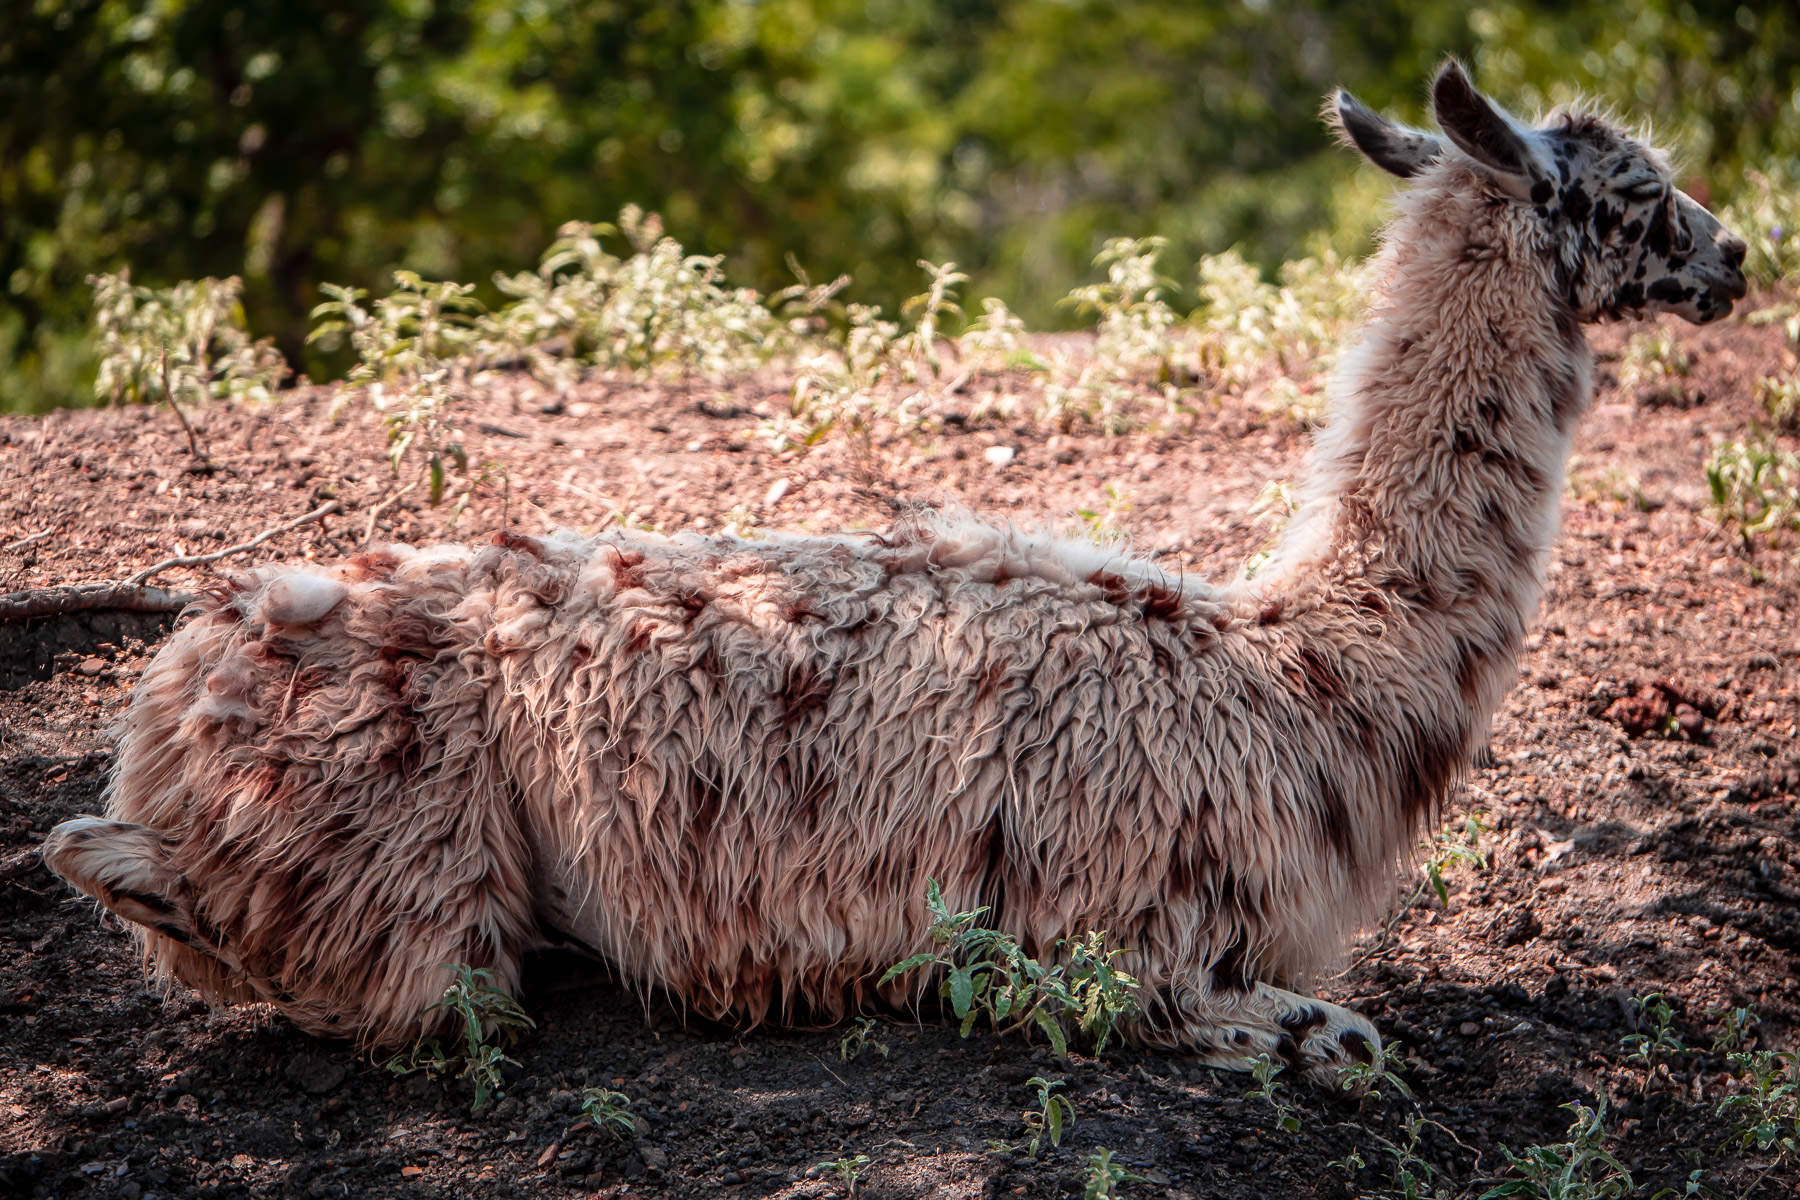 An alpaca rests in the shade at Arbuckle Wilderness Park near Davis, Oklahoma.